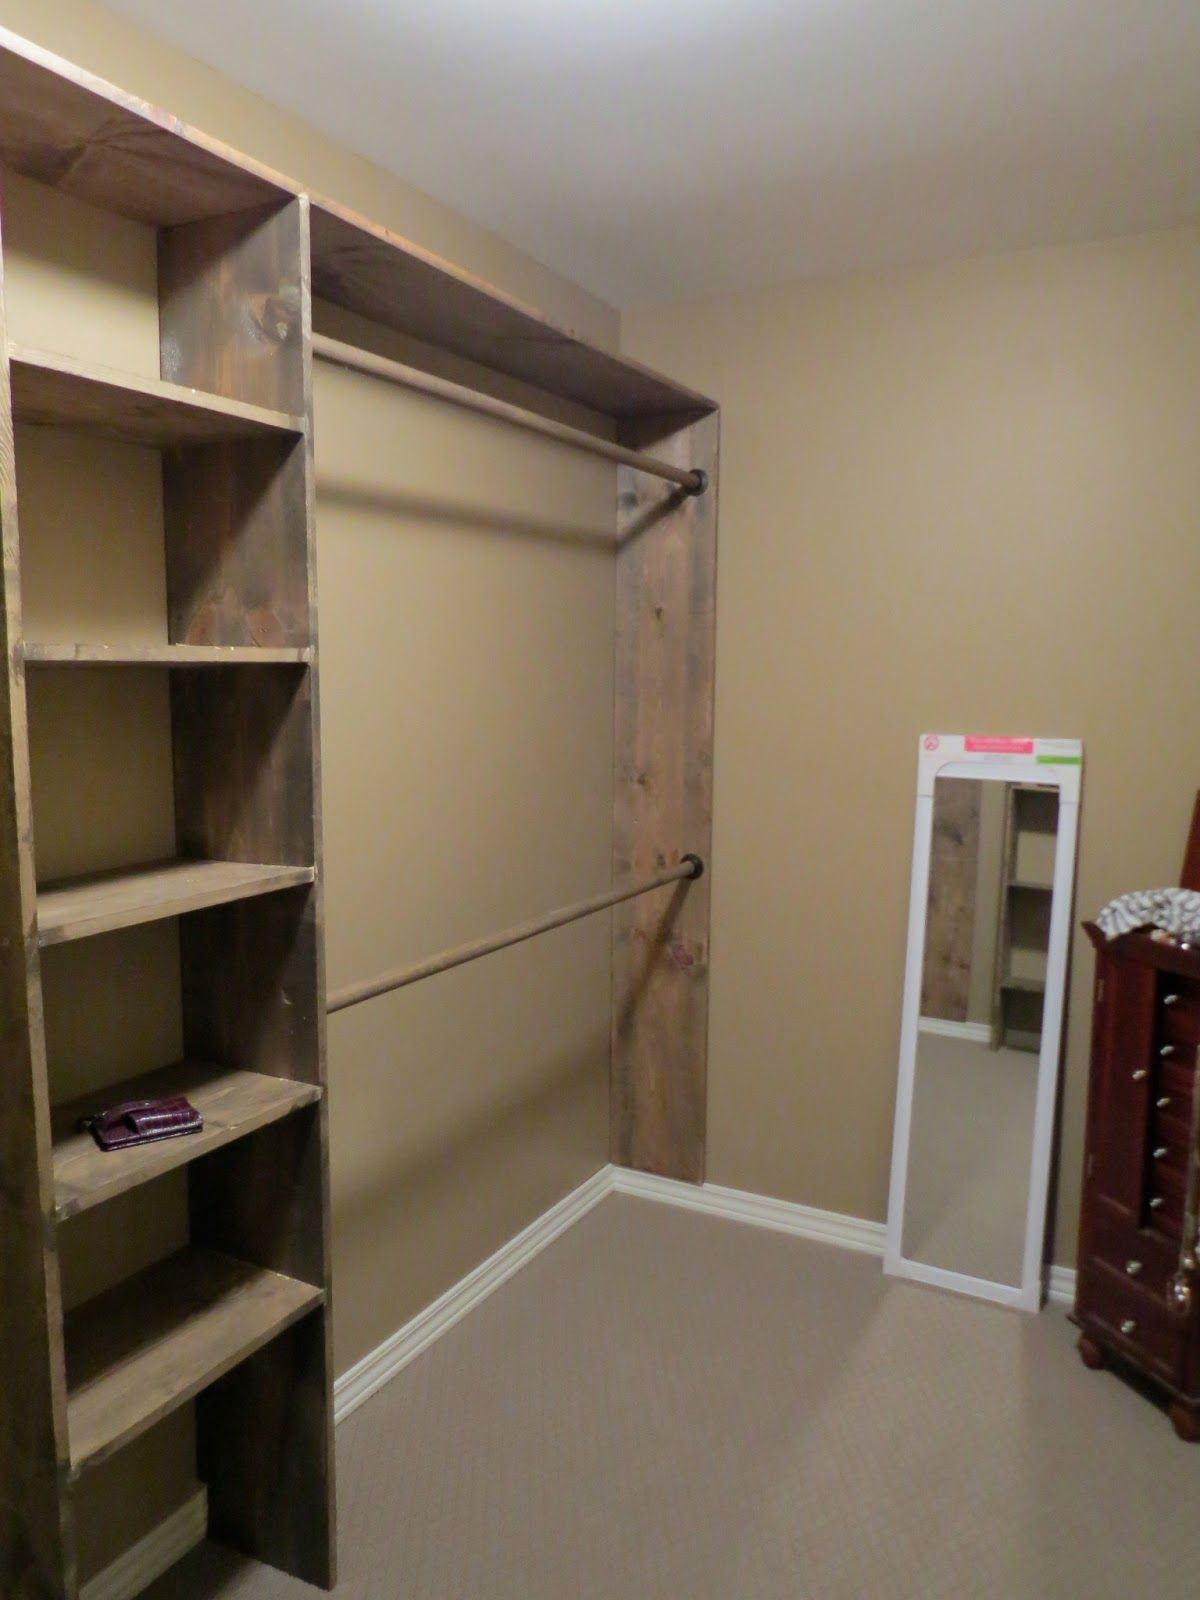 Let 39 s just build a house walk in closets no more living out of laundry baskets diy Master bedroom wardrobe design idea